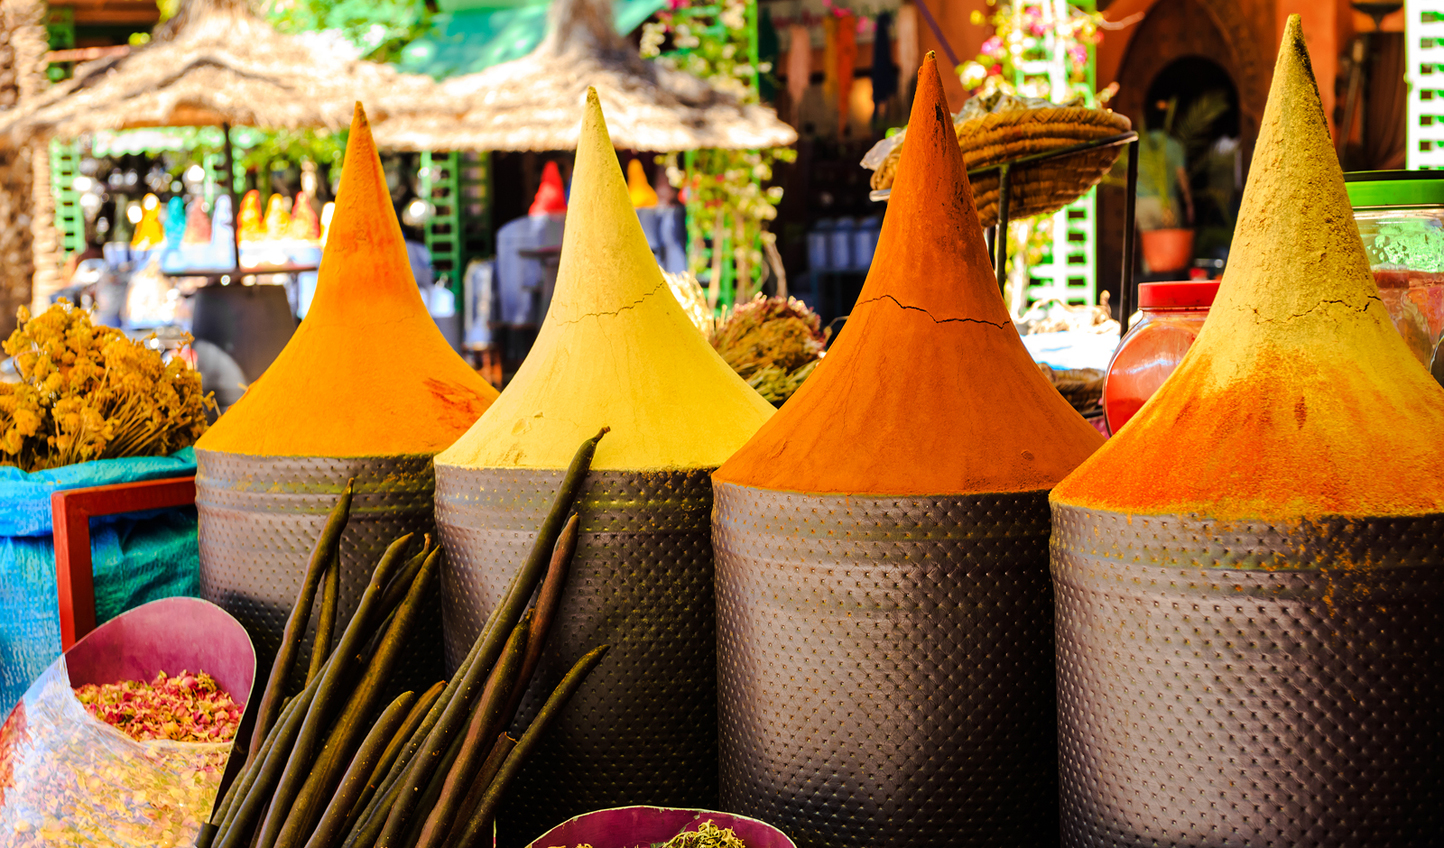 Inhale the scent of the spices in the souks